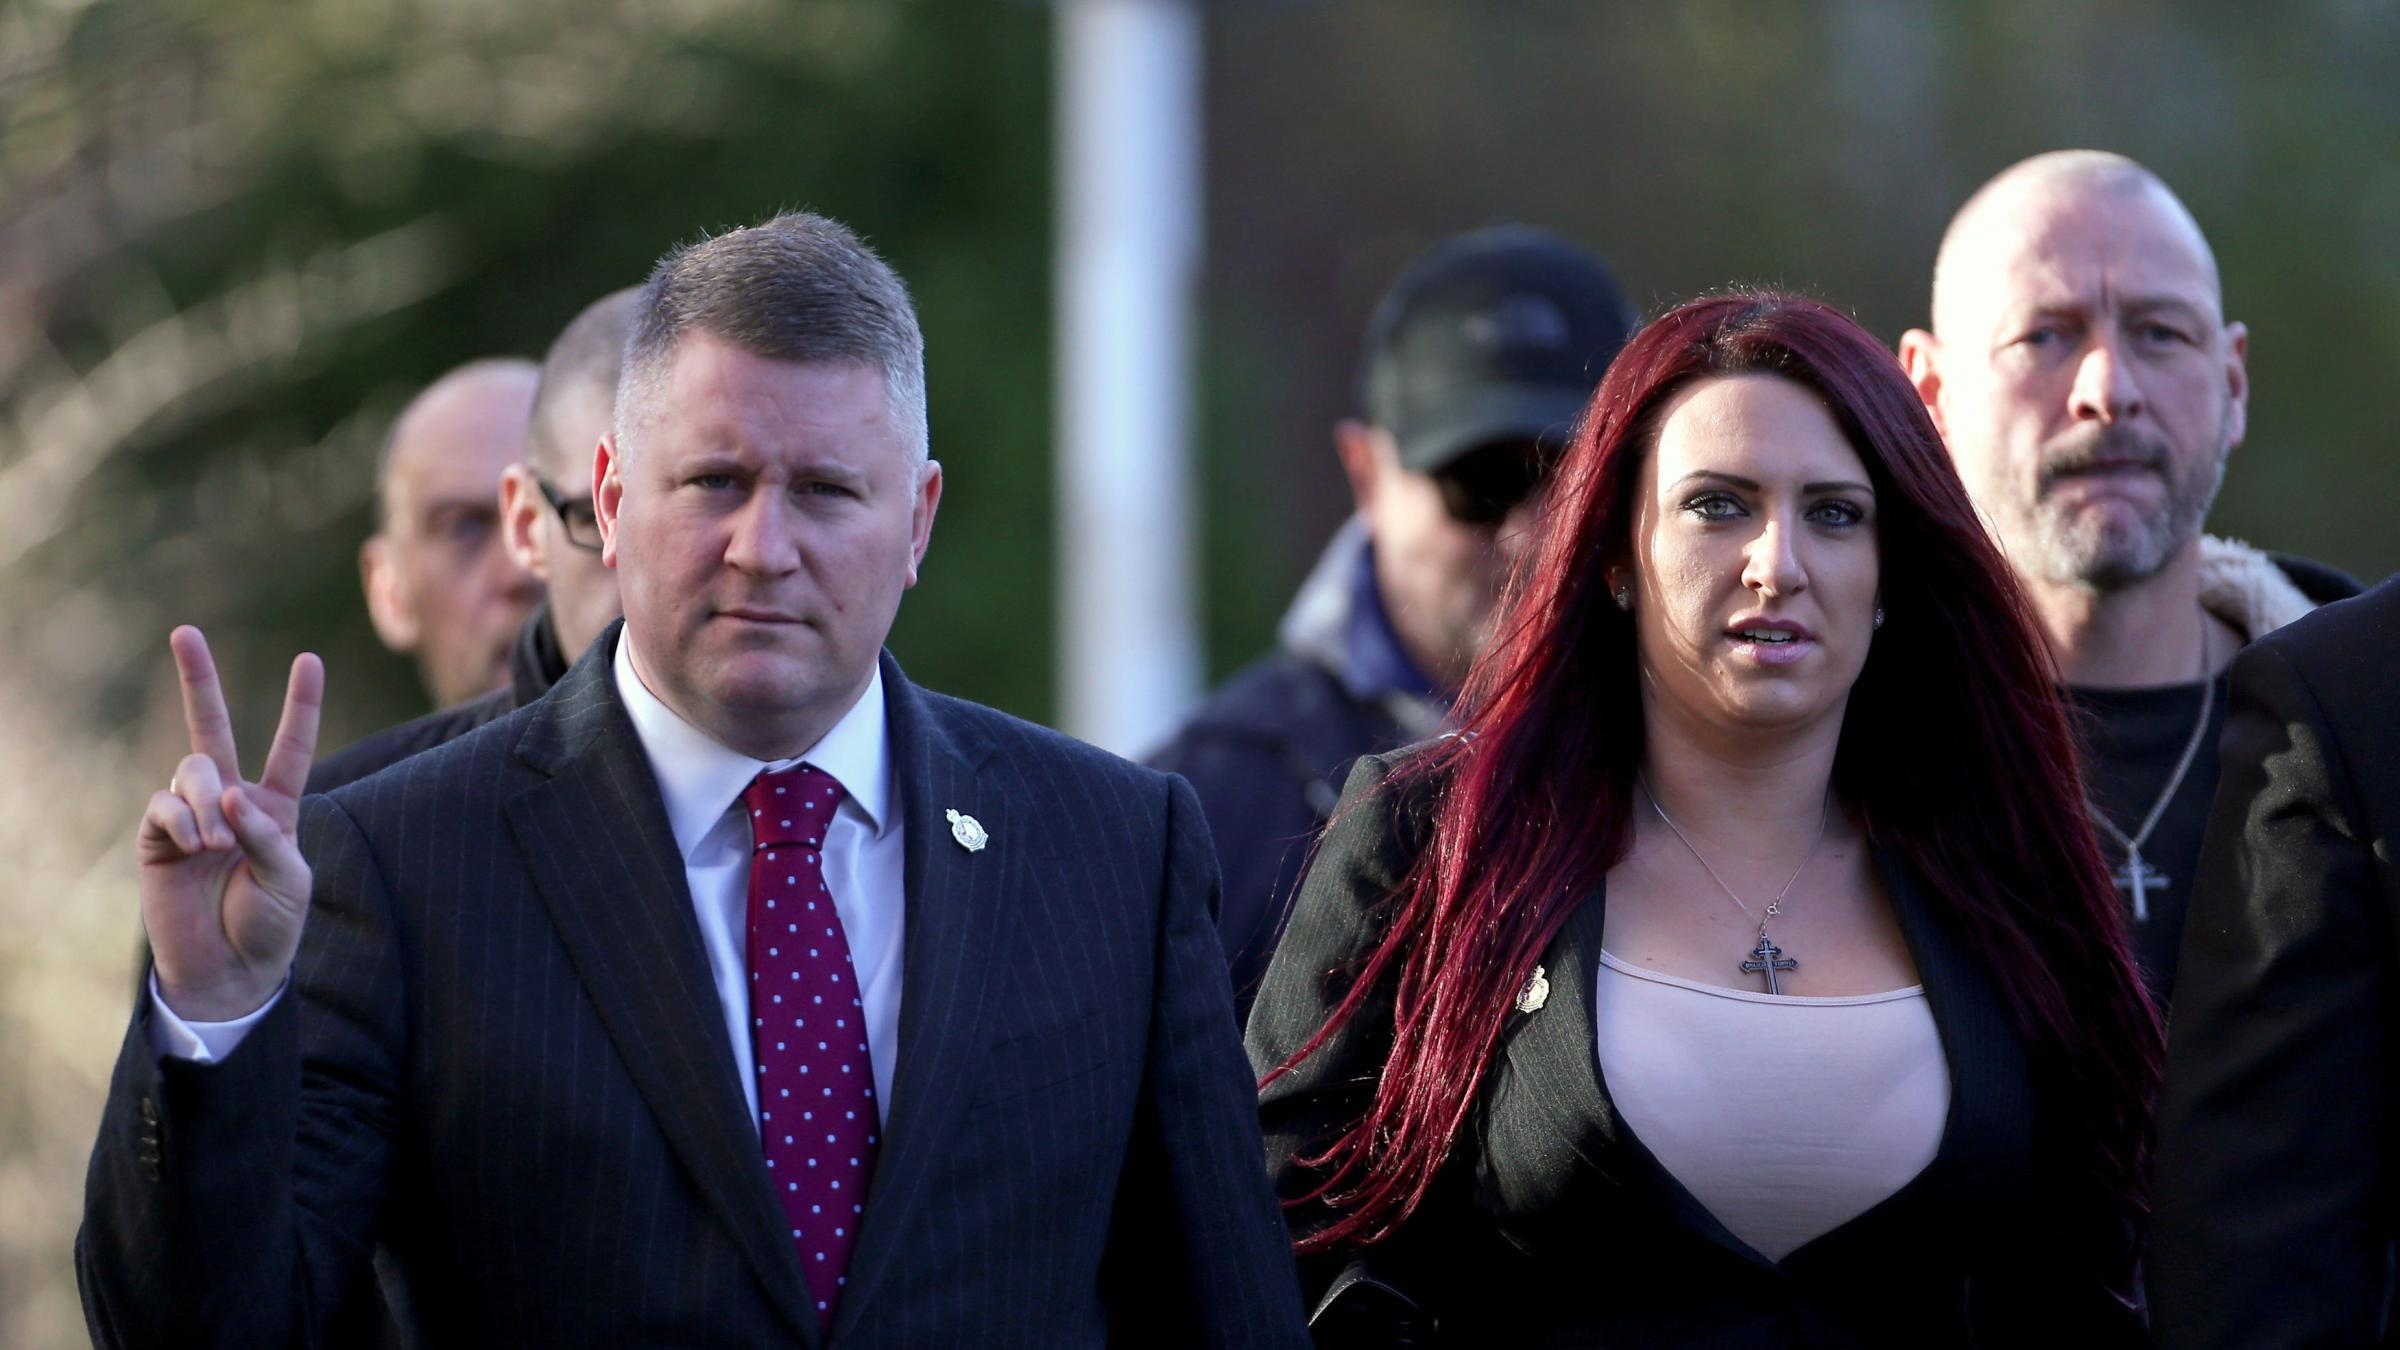 Facebook removes official Britain First page